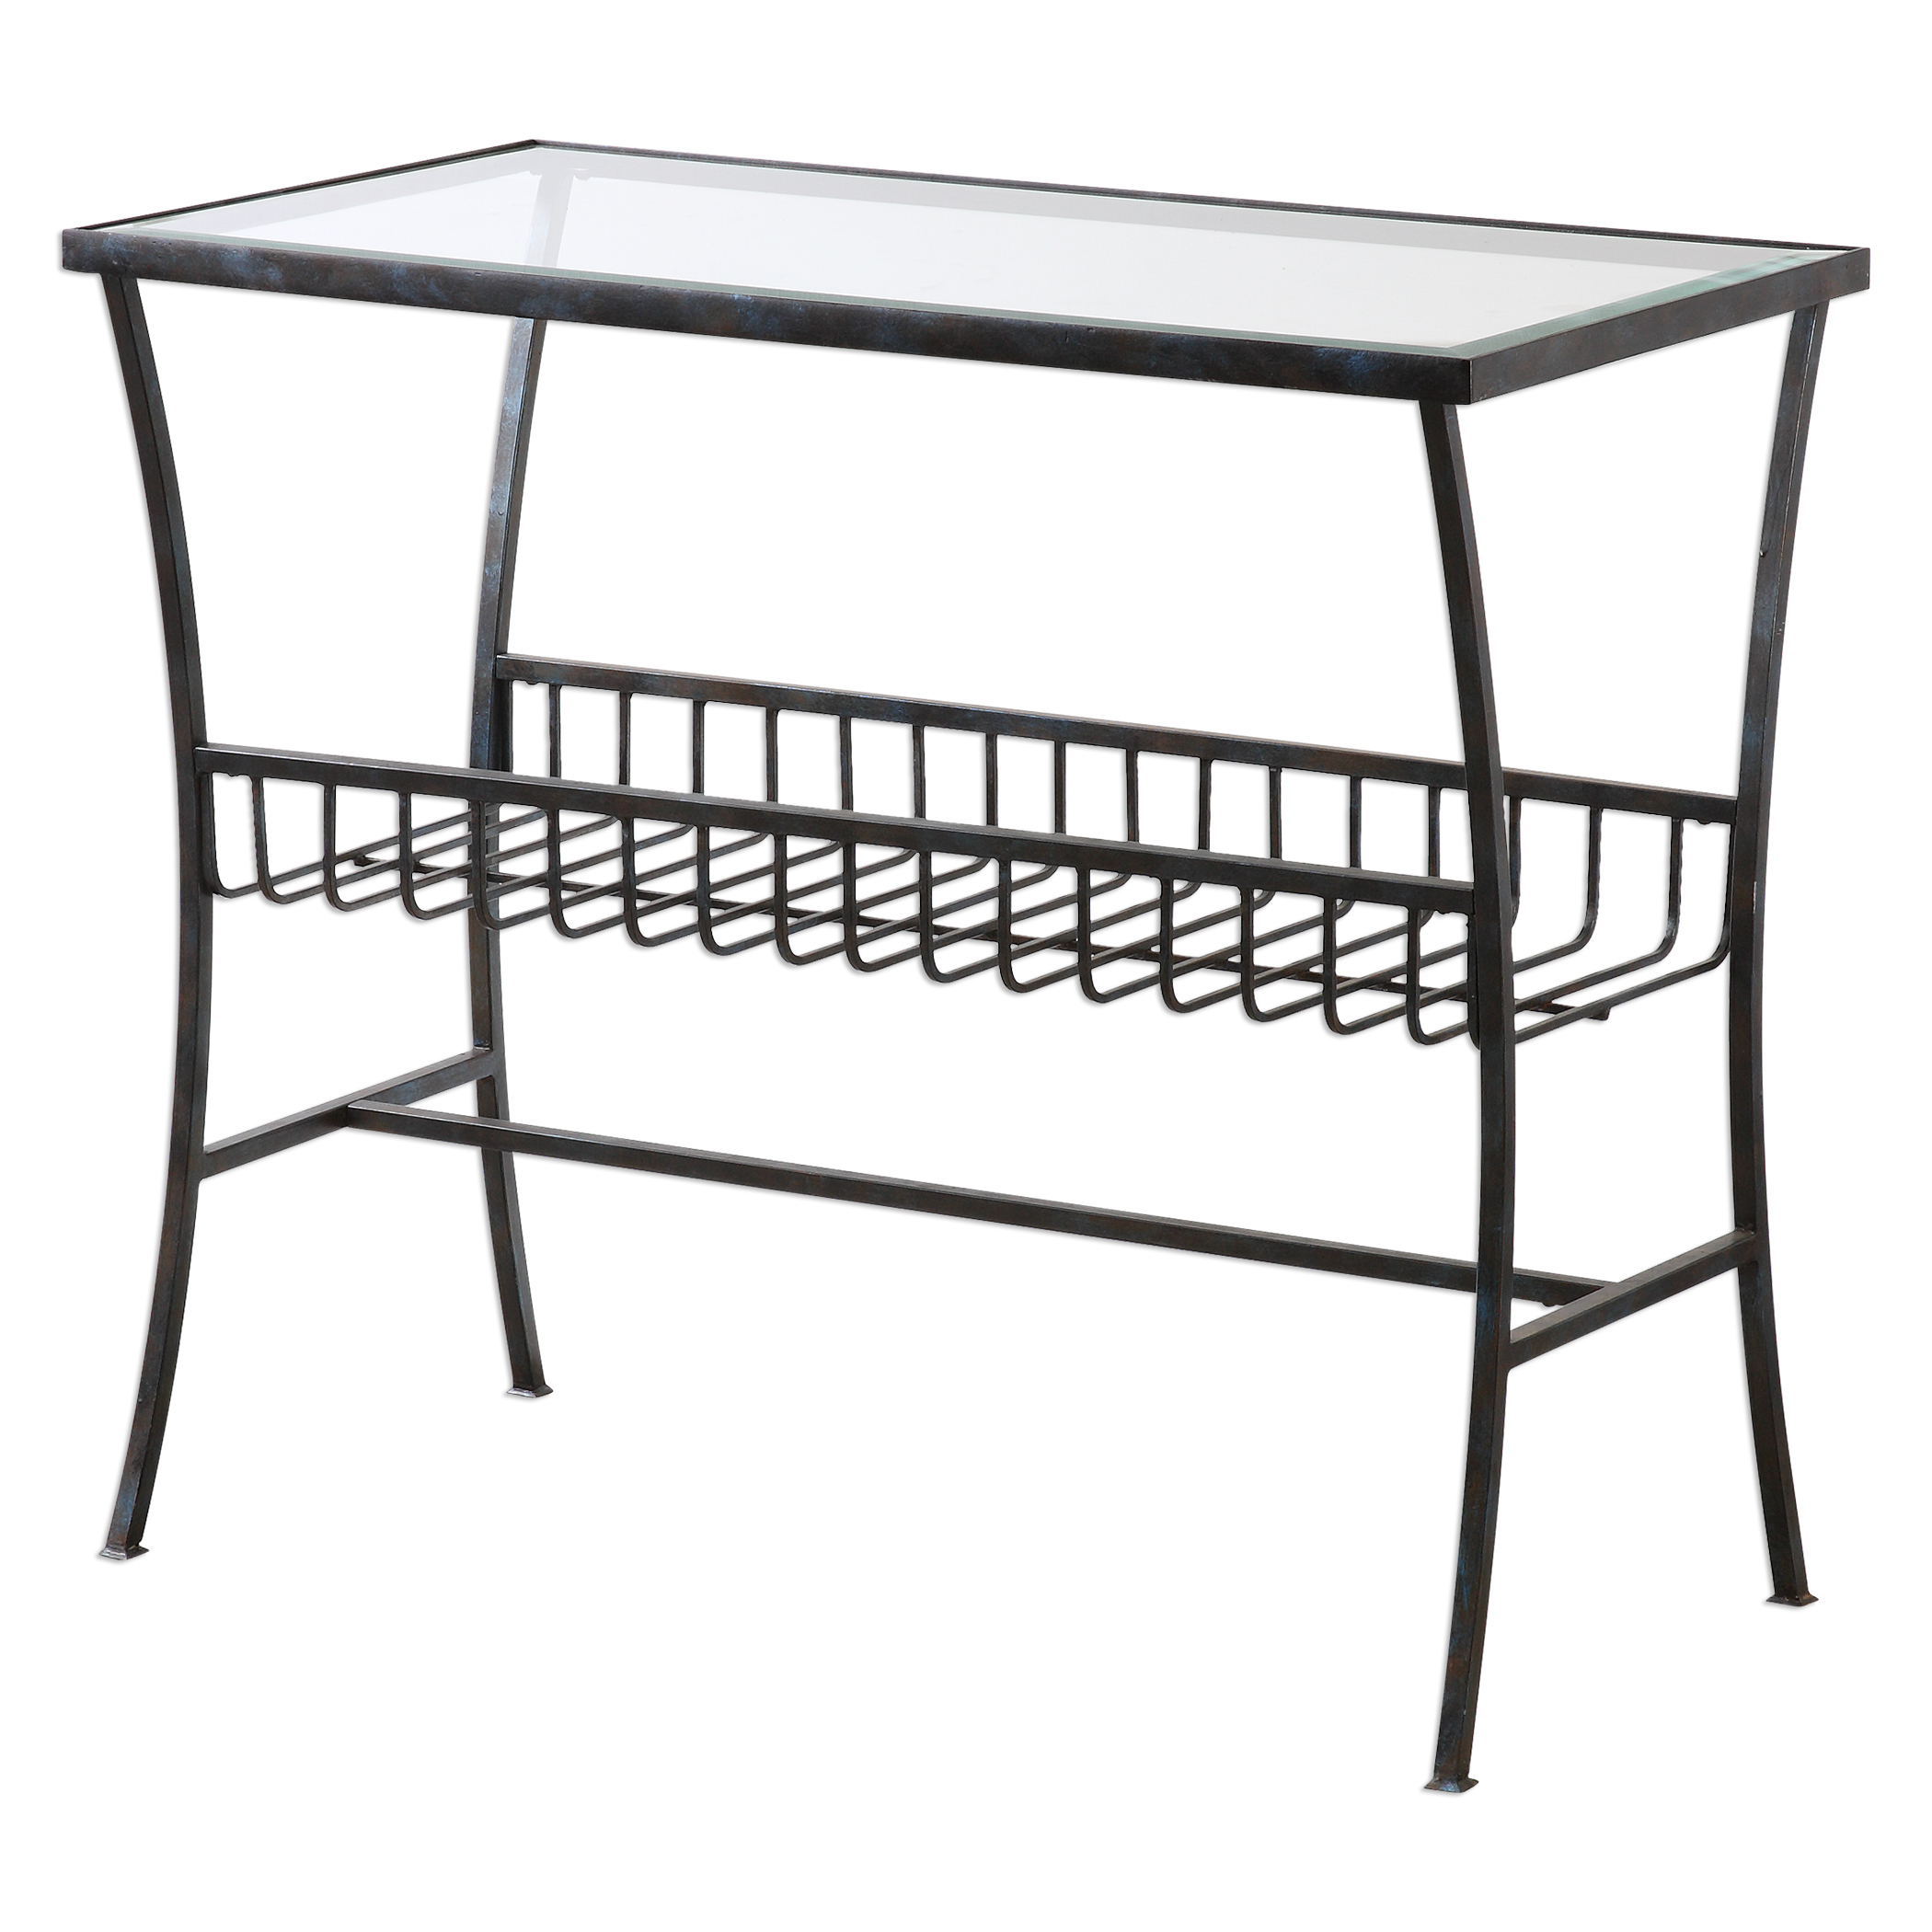 Uttermost Accent Furniture Tito Aged Iron Magazine Table - Item Number: 24638